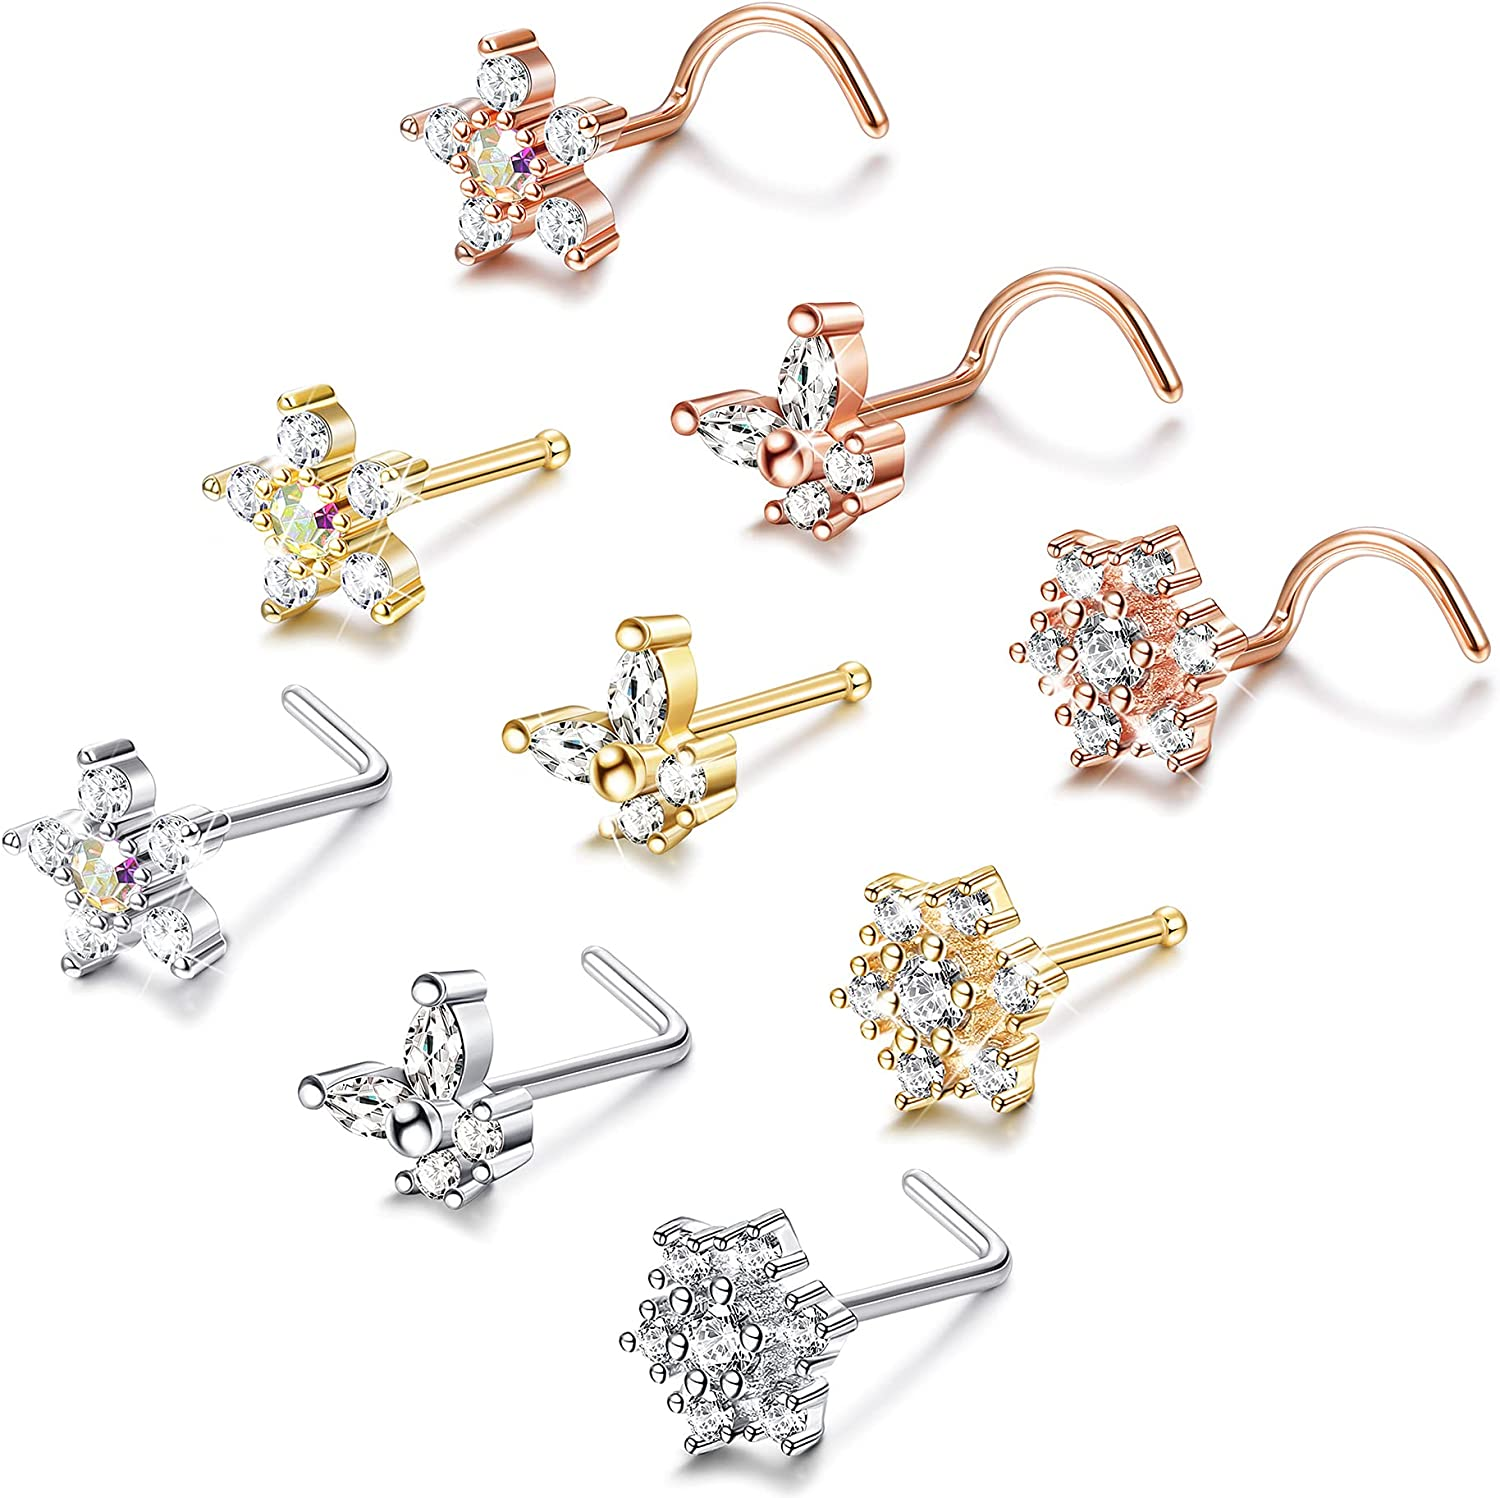 Drperfect Max 62% OFF 20G L Shape Bone Screw Studs New Shipping Free Snowflake Nose F Bling CZ